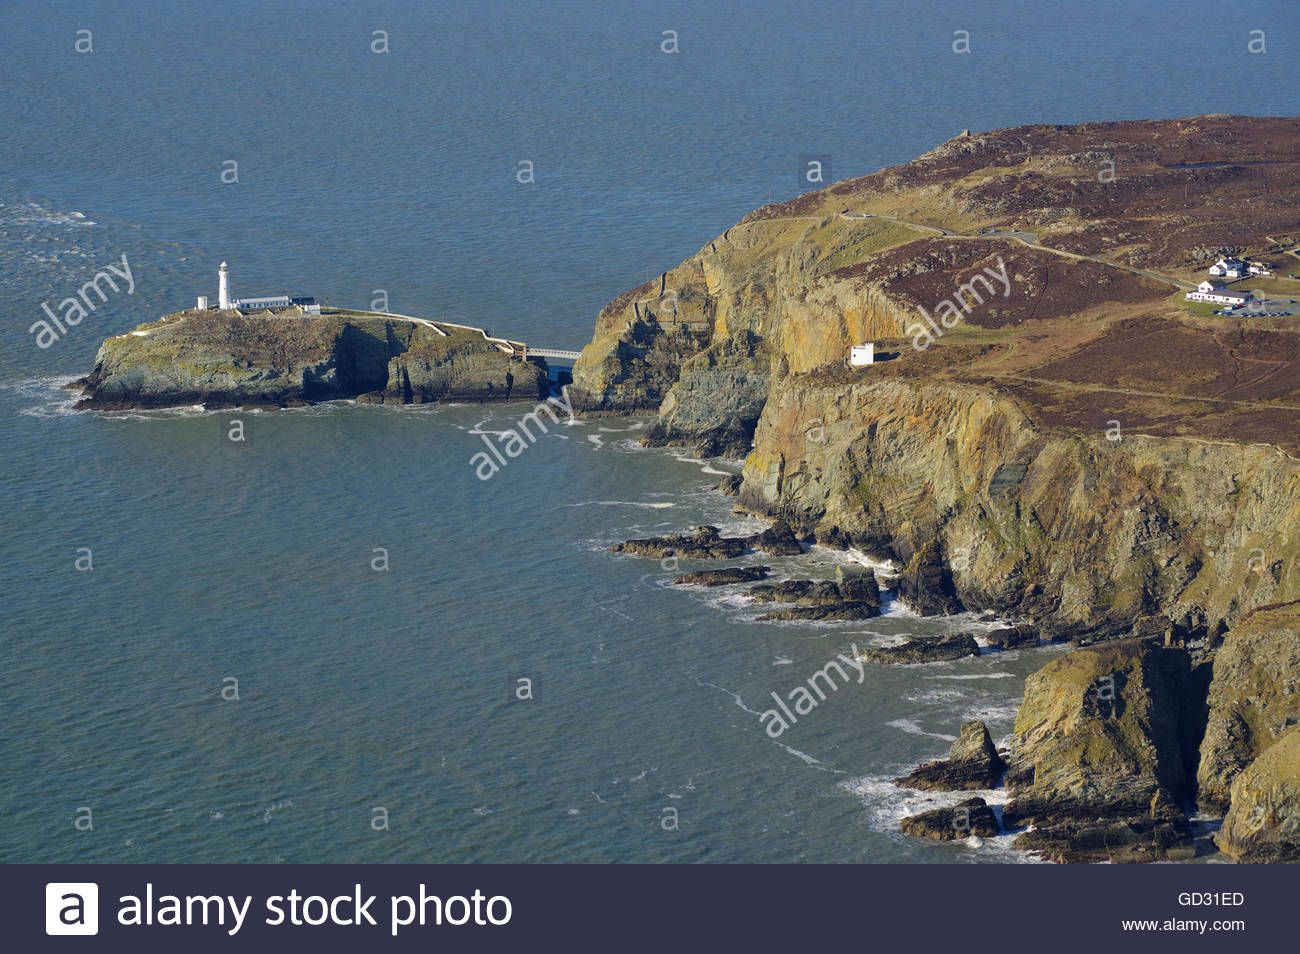 South Stack Lighthouse Holyhead, Aerial view of South Stack Lighthouse, Holyhead, Anglesey, North ...